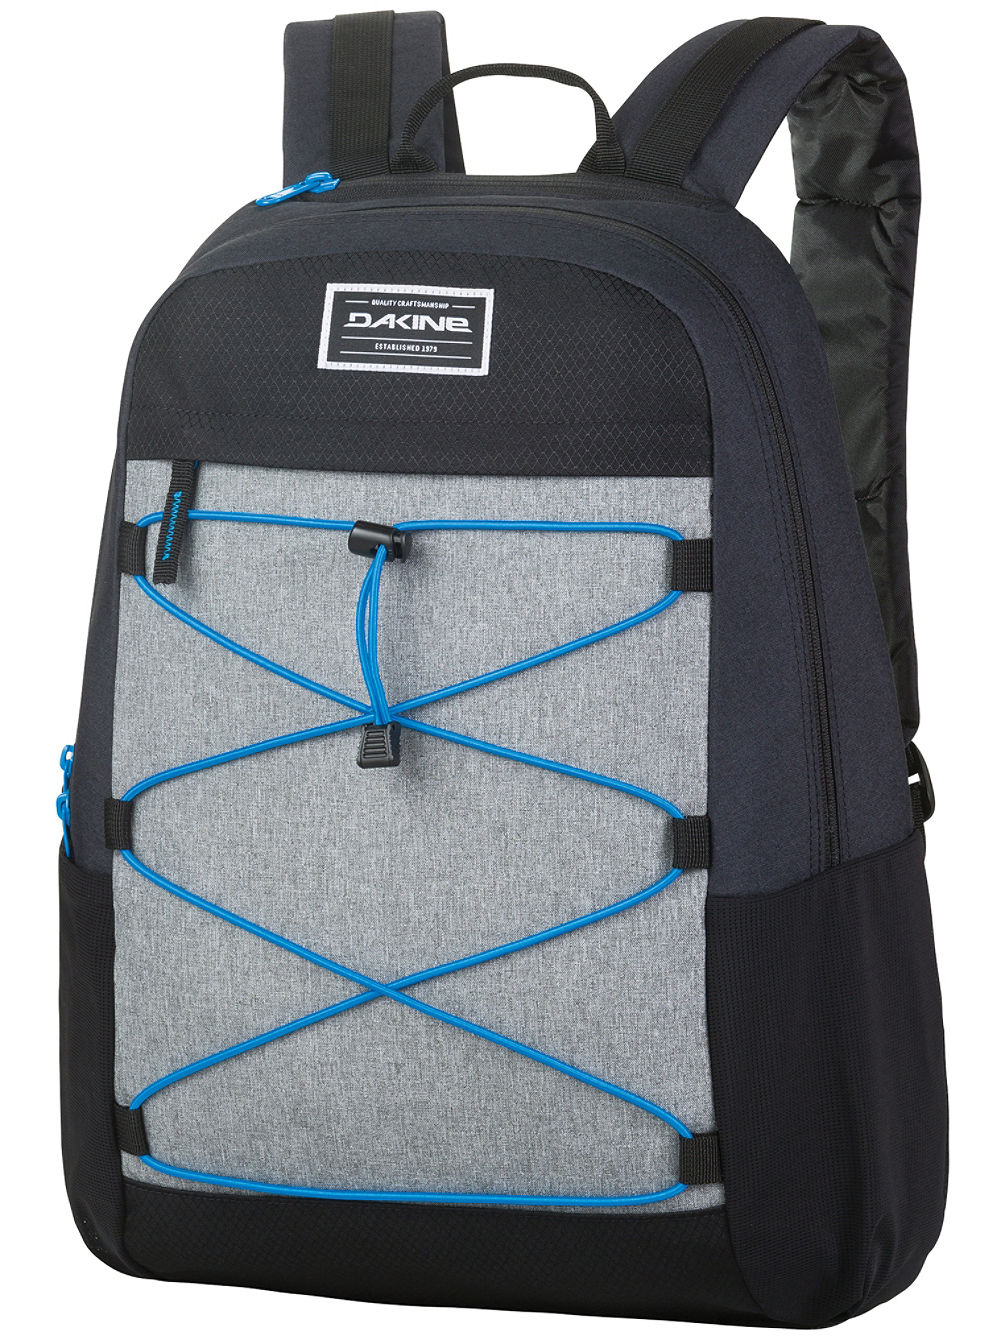 Wonder 22L Backpack